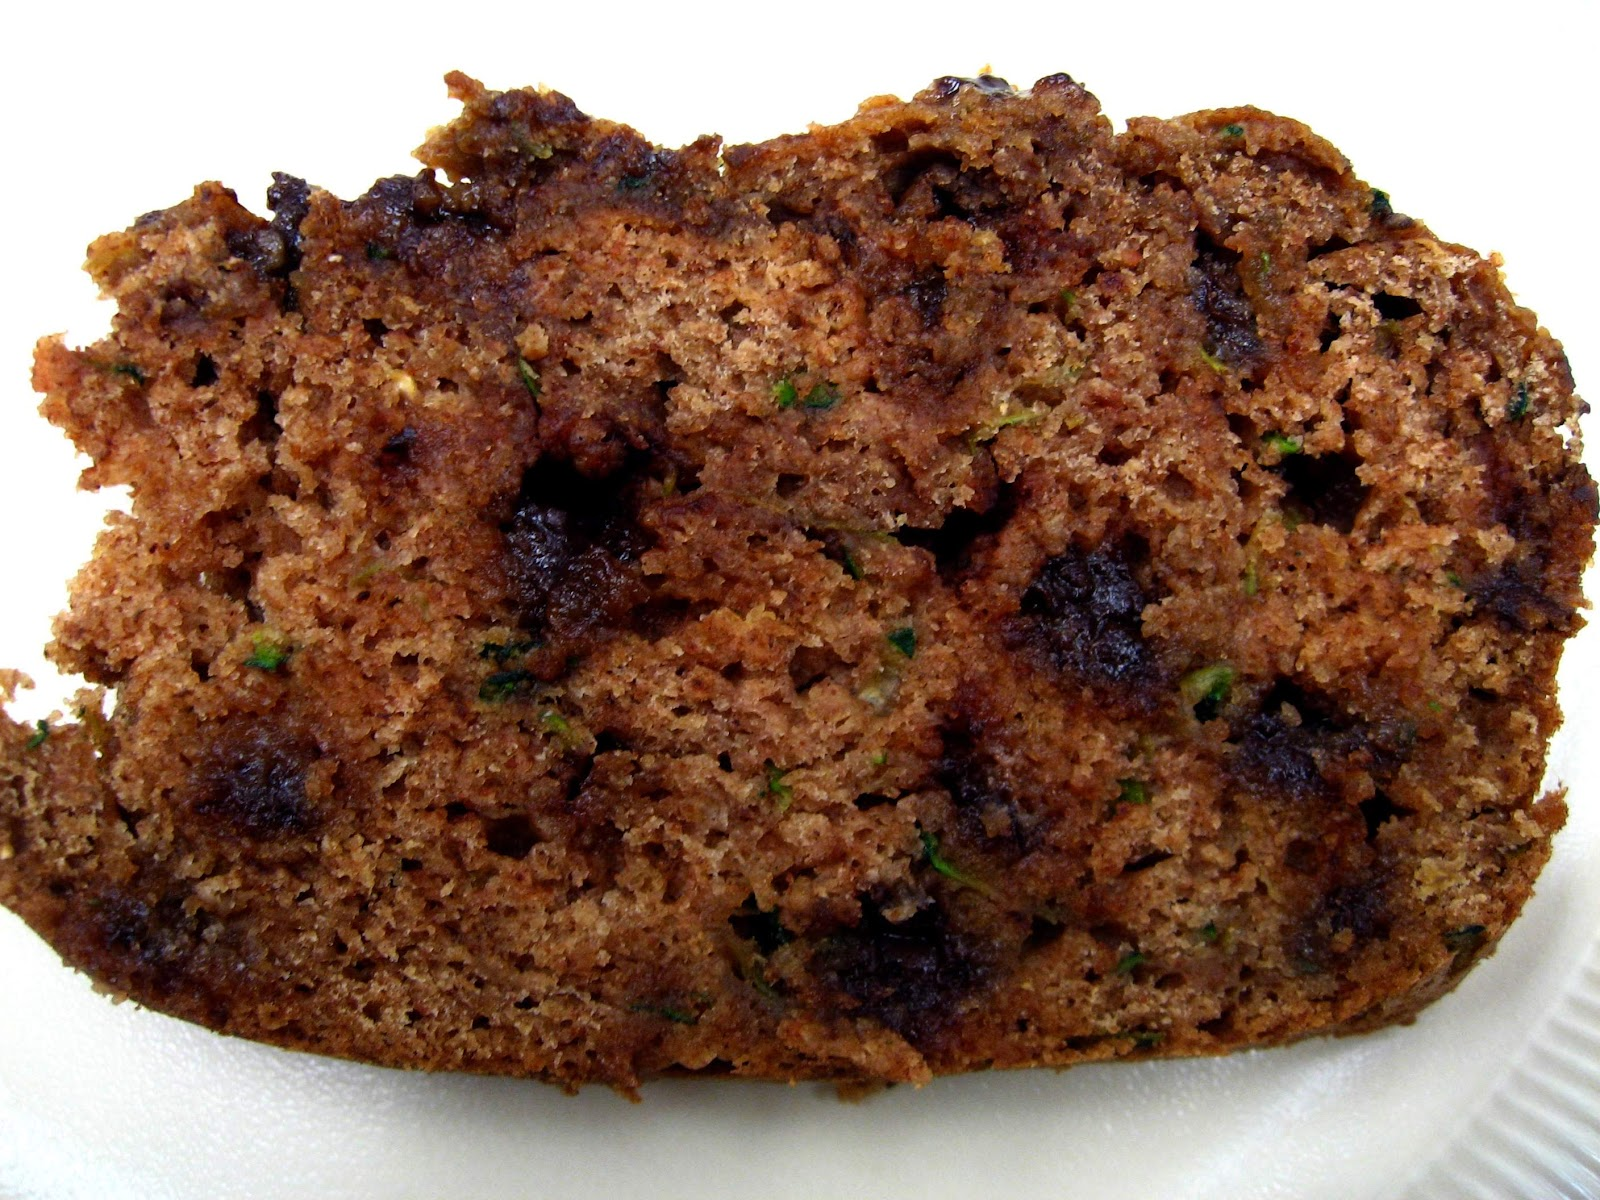 yellebellyboo: Low Fat Chocolate Chip Zucchini Bread